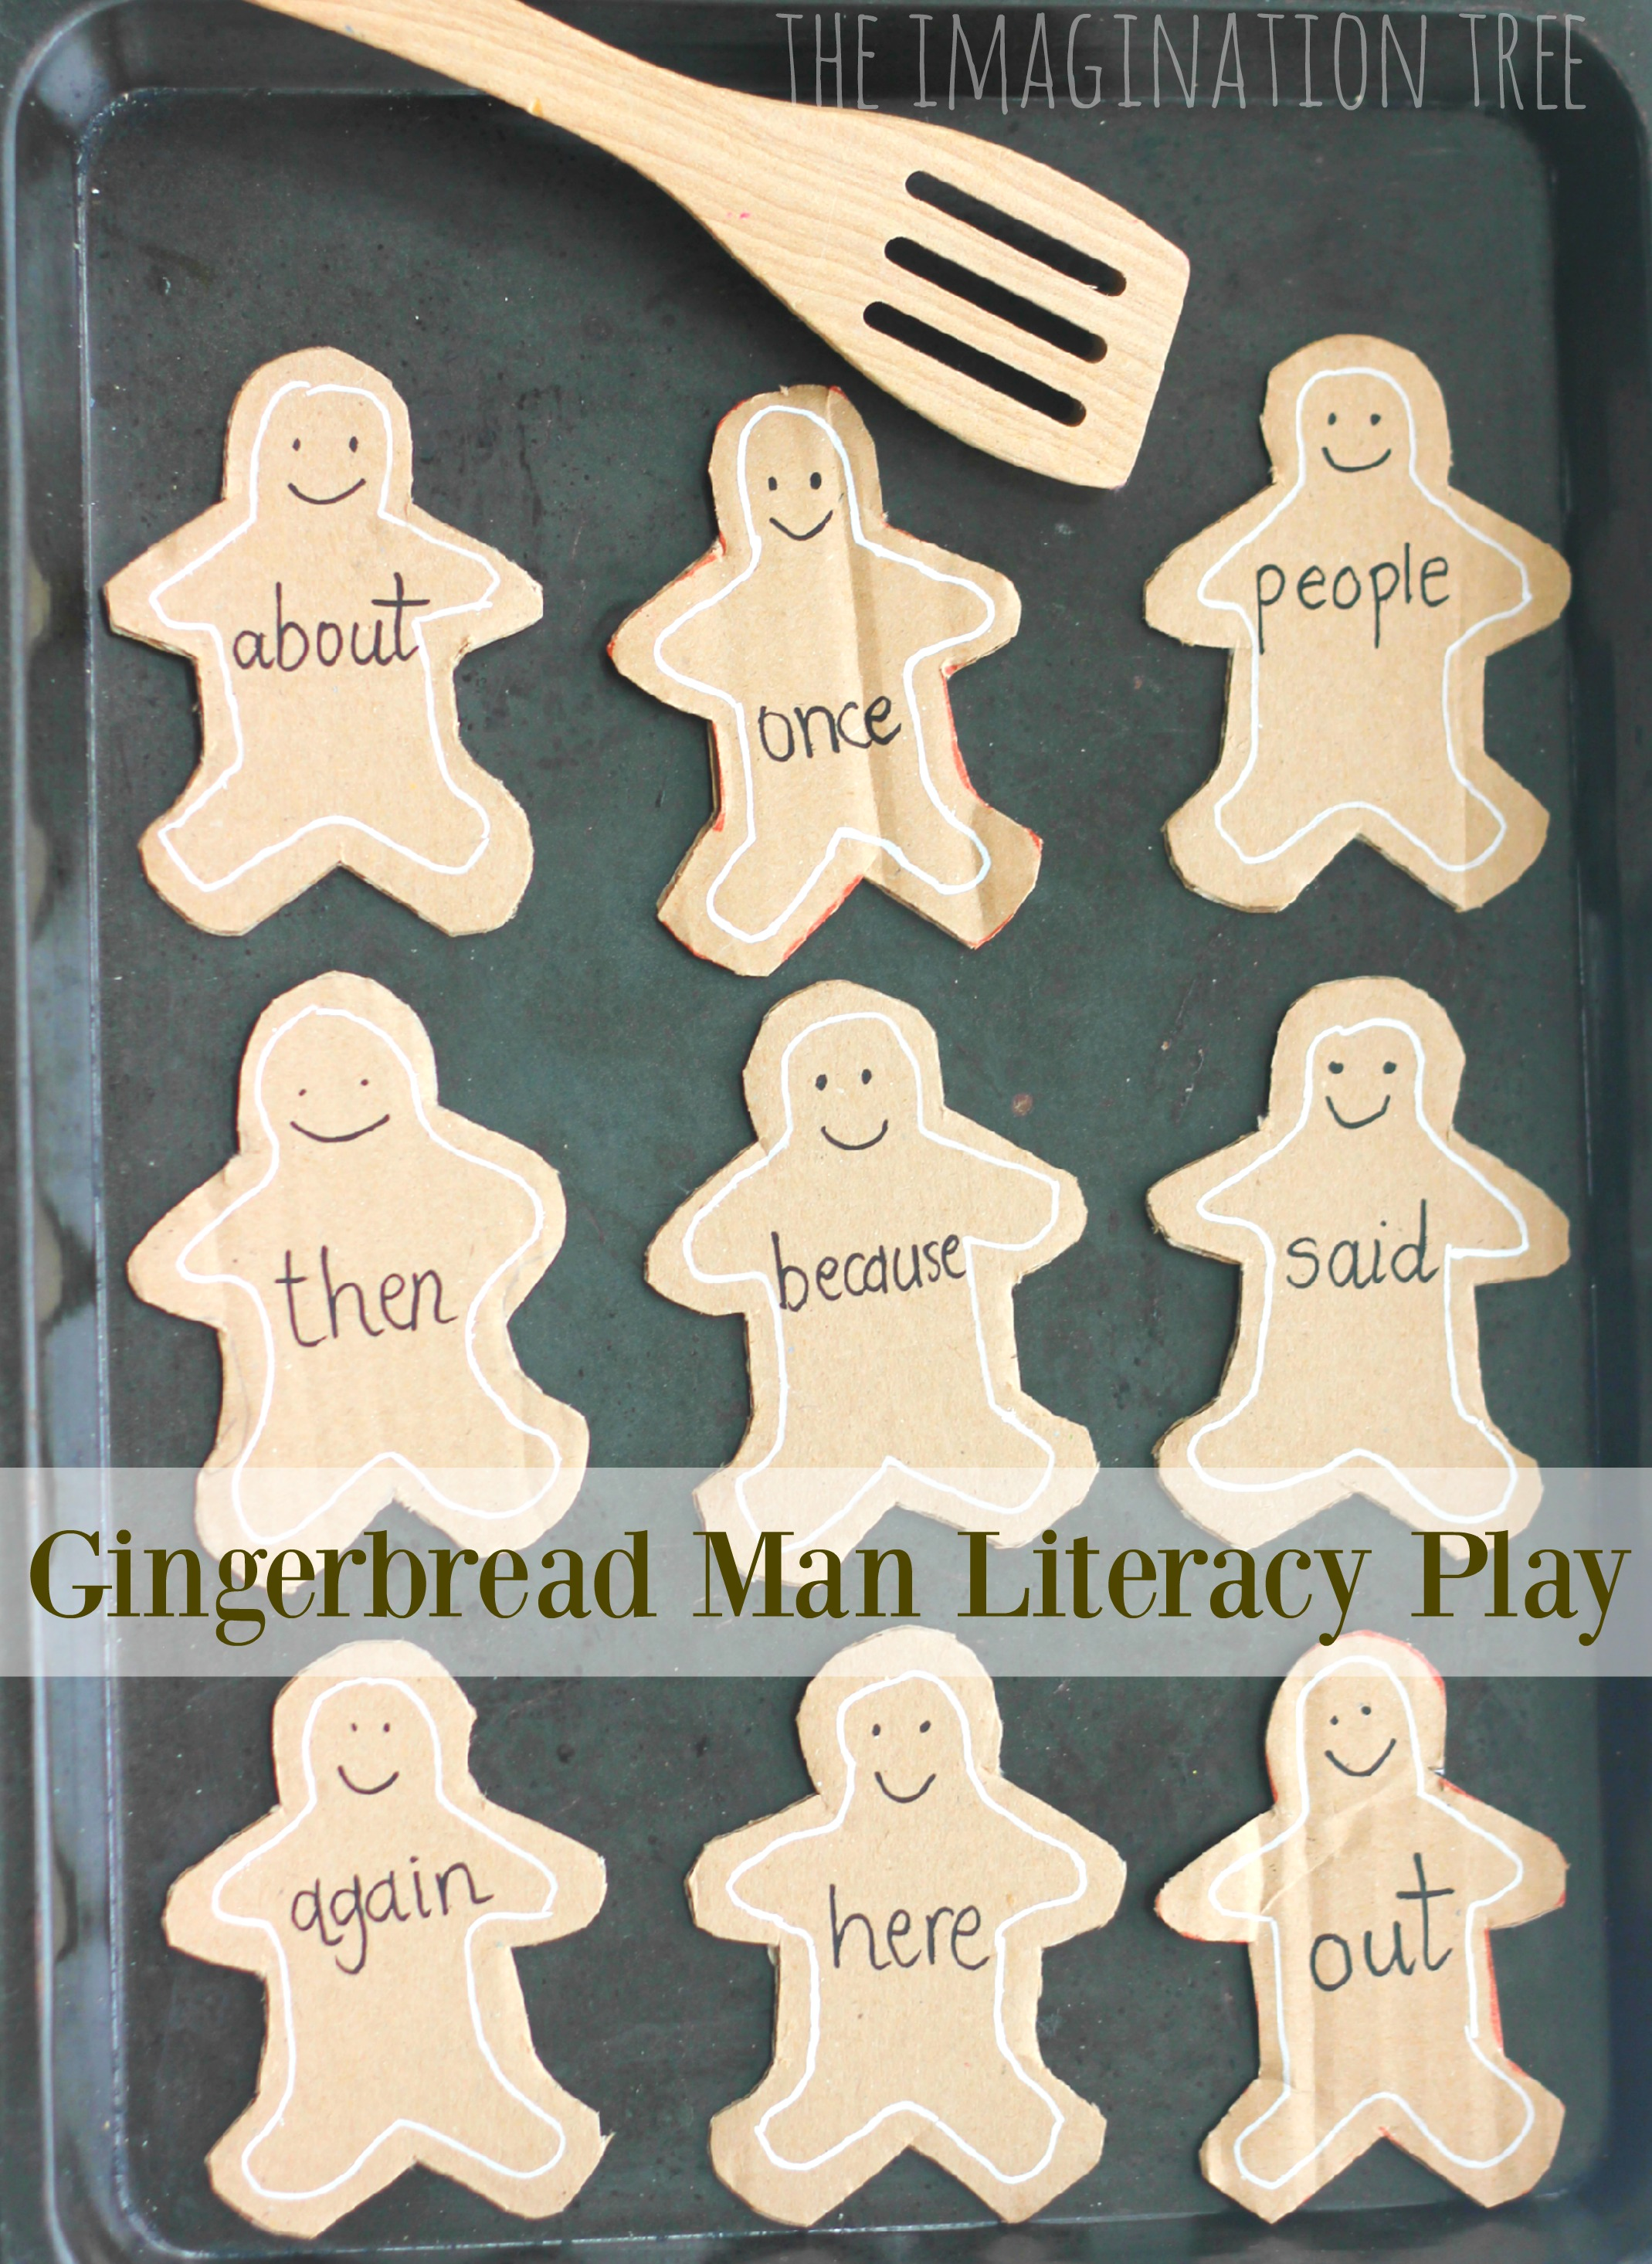 Gingerbread Man Learning Card Games